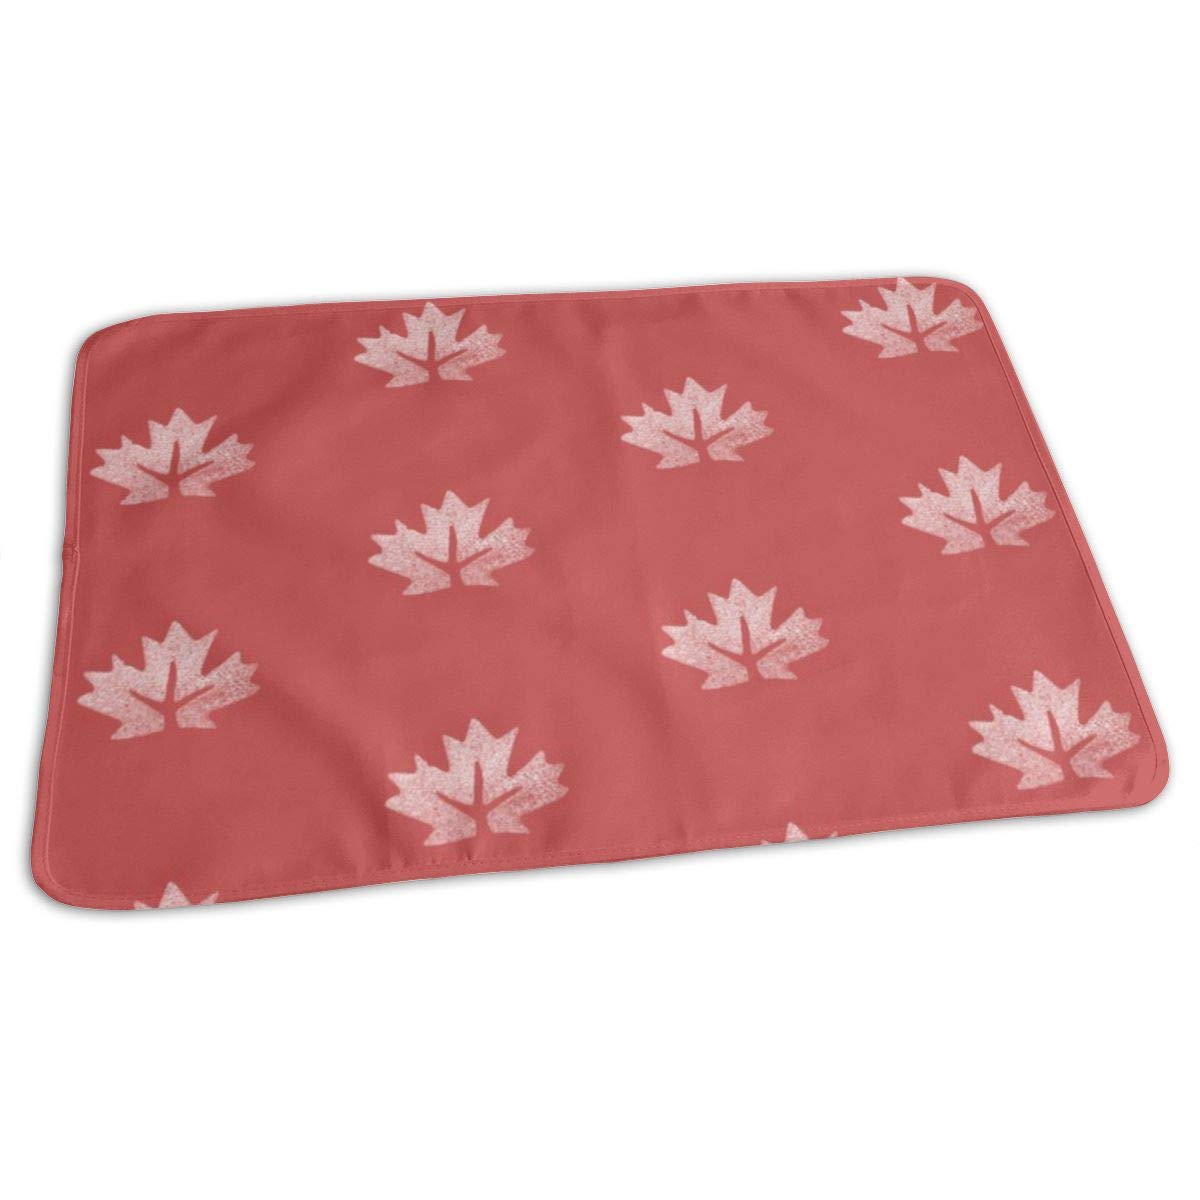 Maple Leaf On Red Baby Portable Reusable Changing Pad Mat 19.7x27.5 inch